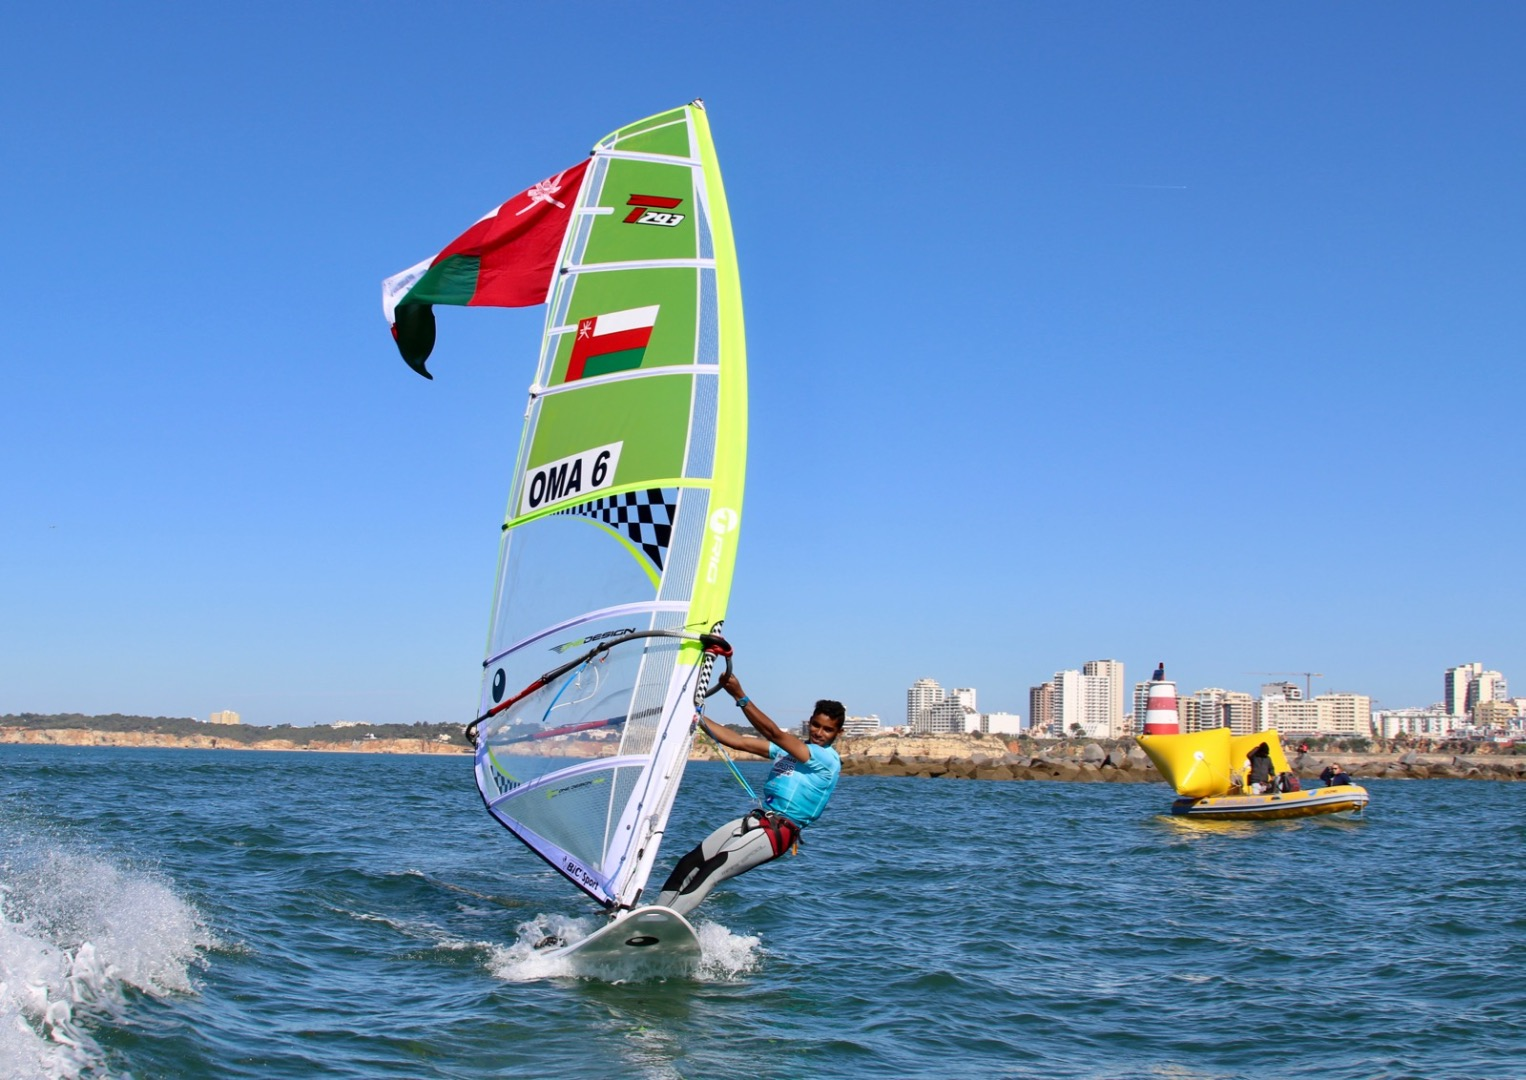 Oman wins first ever windsurfing world championship silver medal